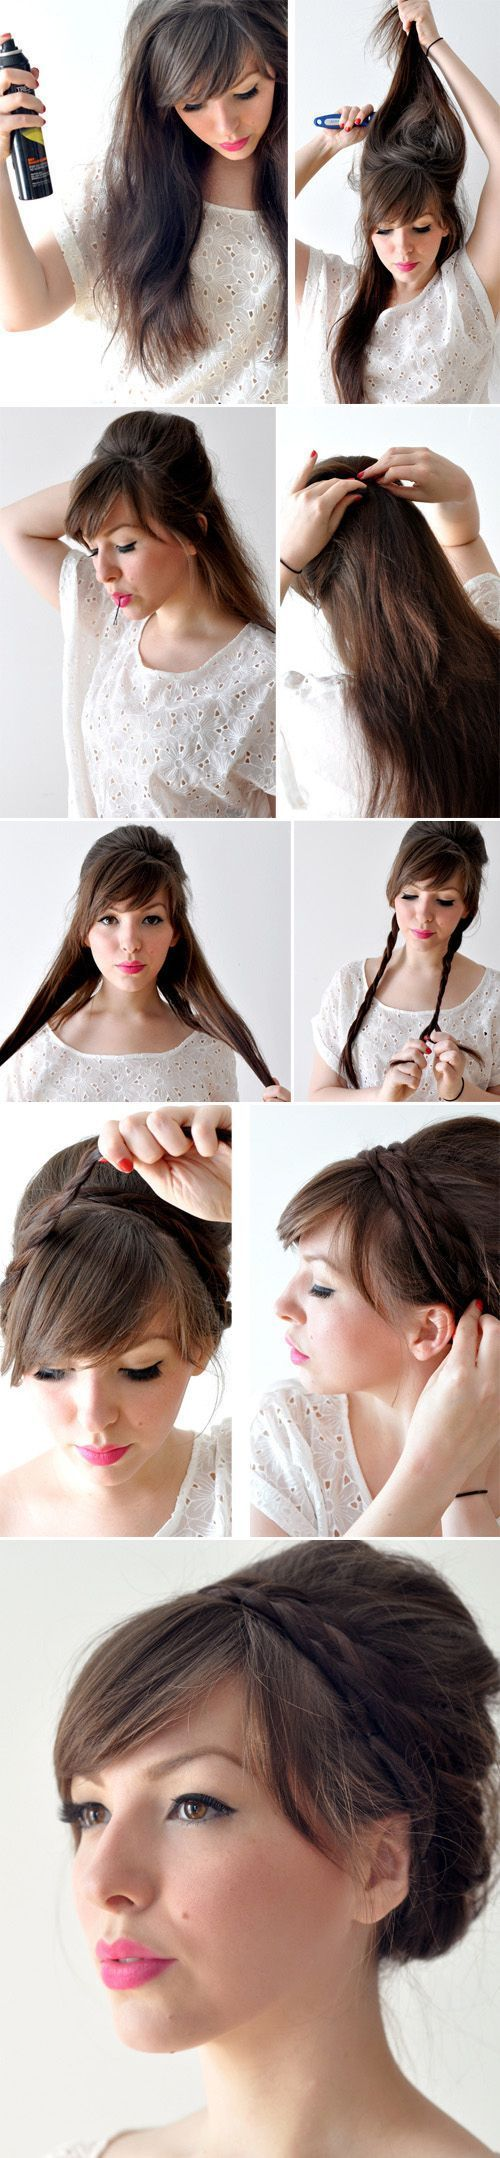 Such a simple to achieve, feminine hairstyle.